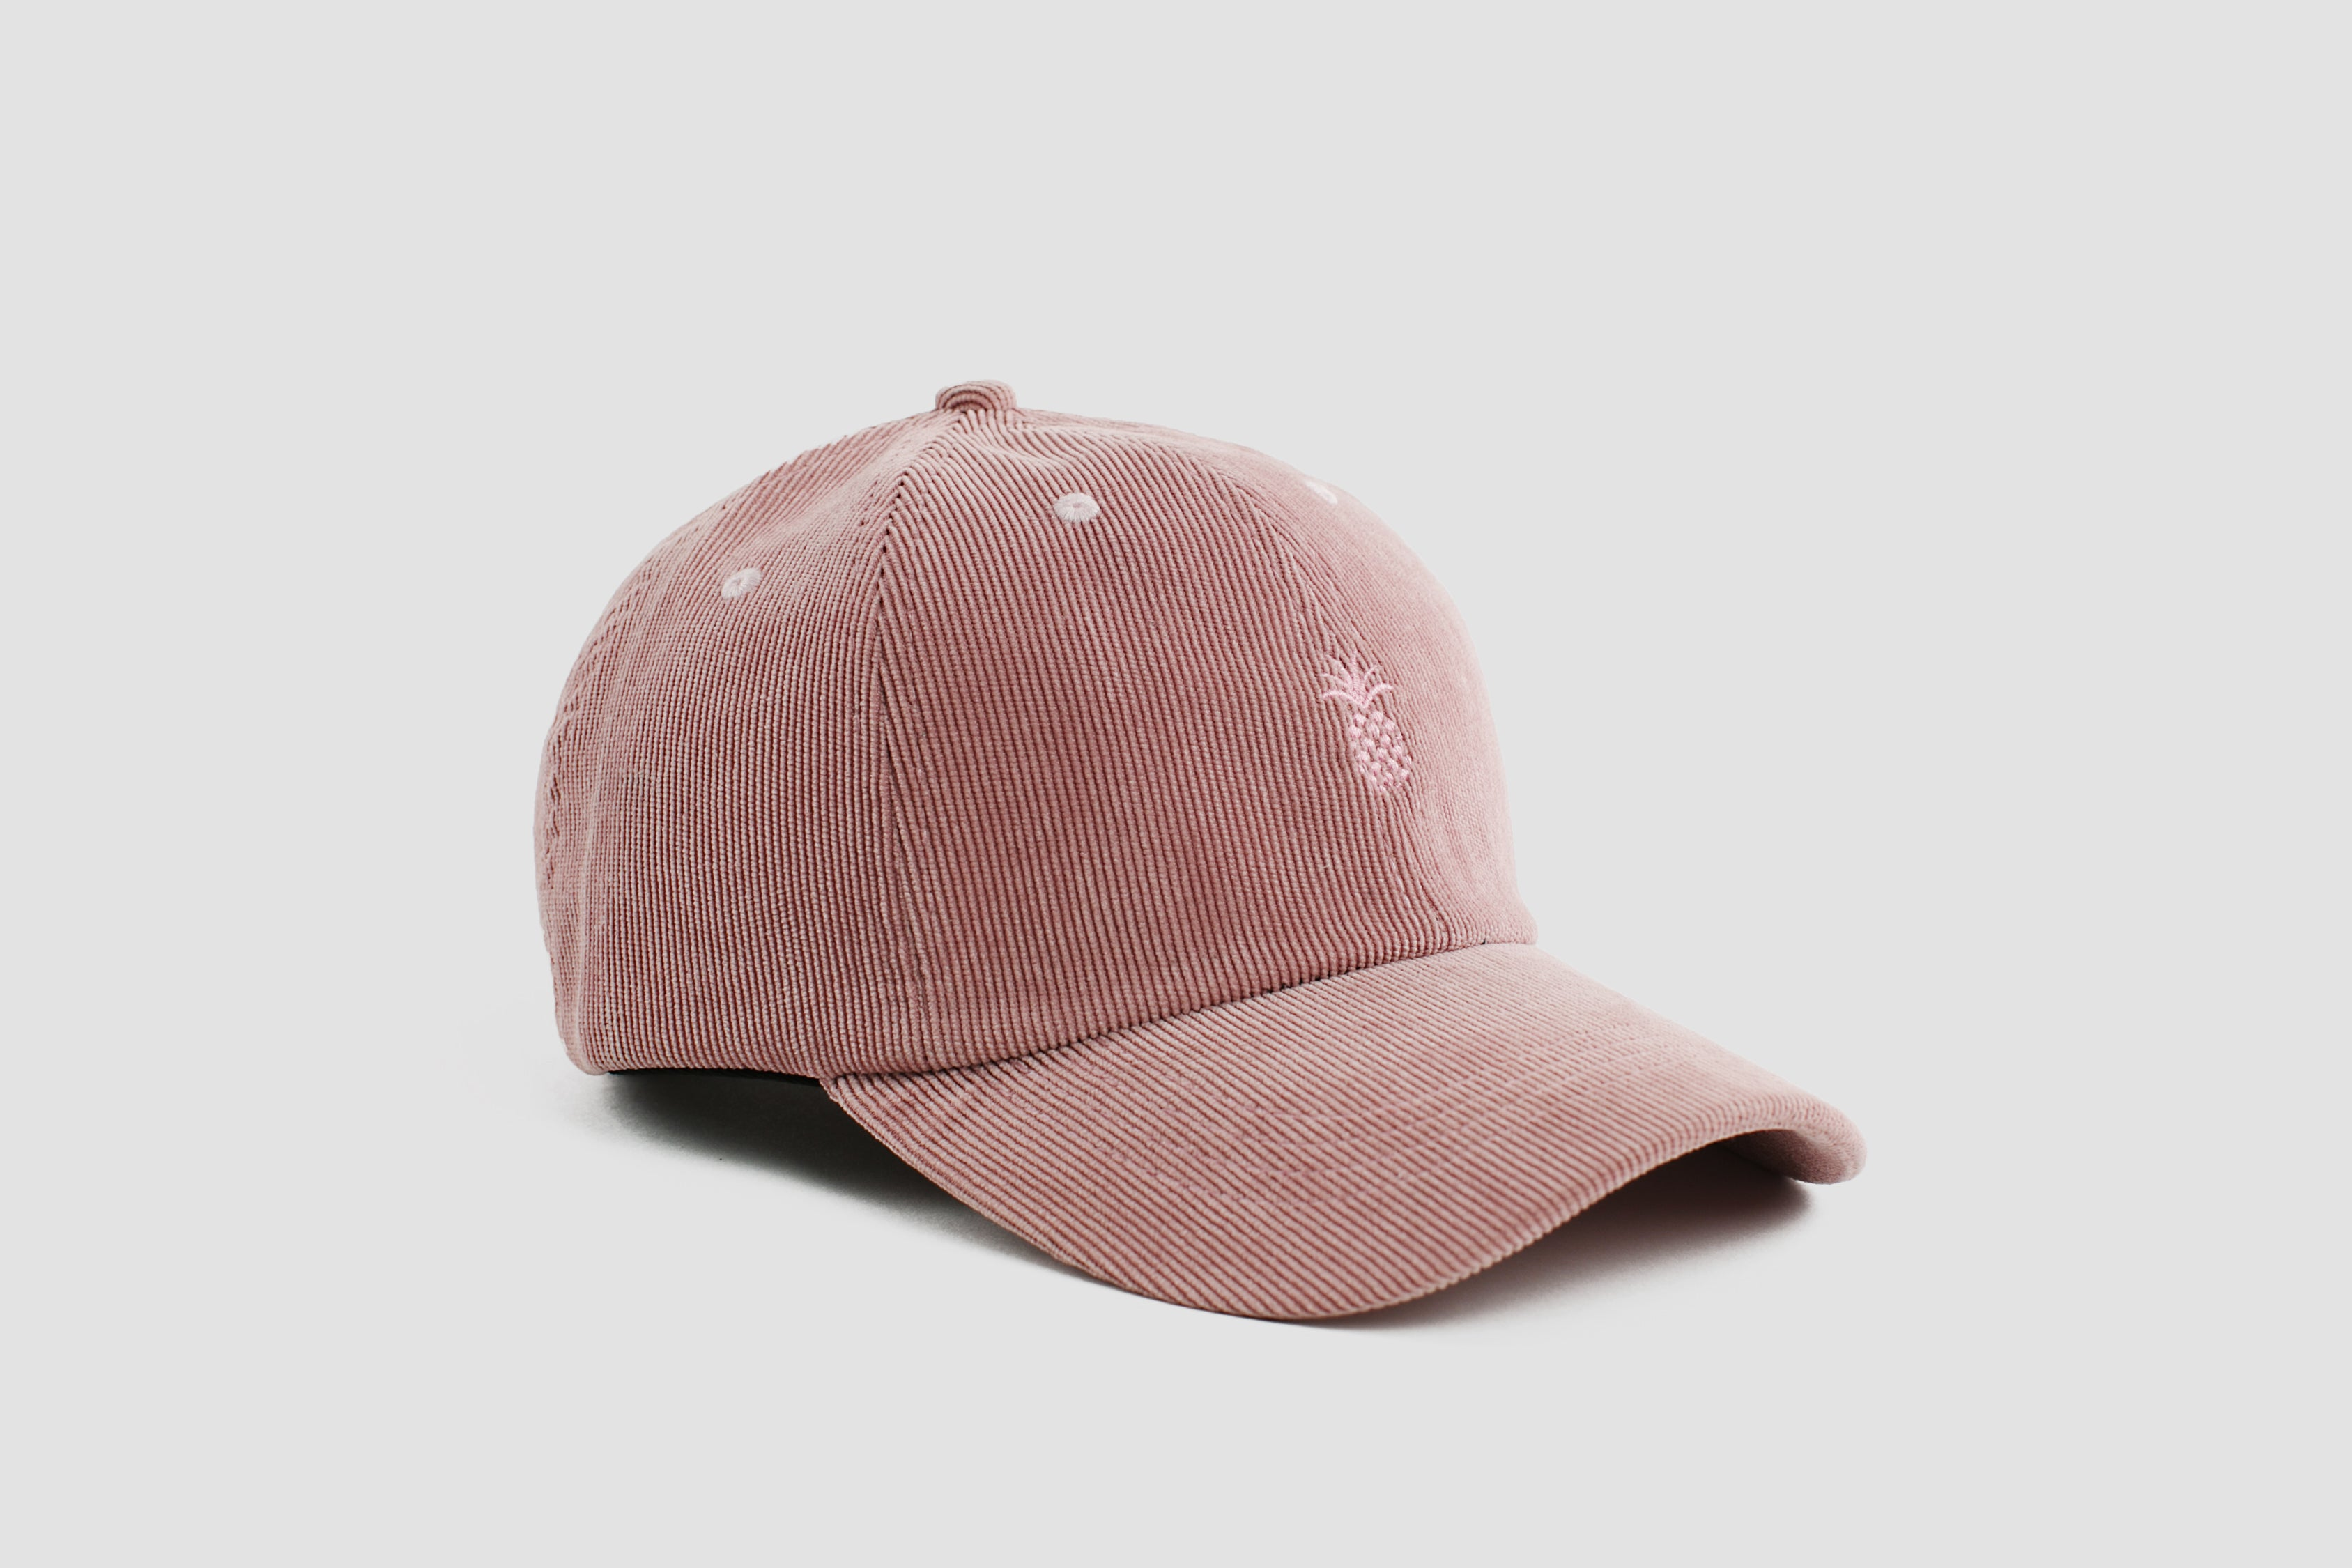 Qilo - Pineapple Corduroy Dad Hat in Dusty Rose